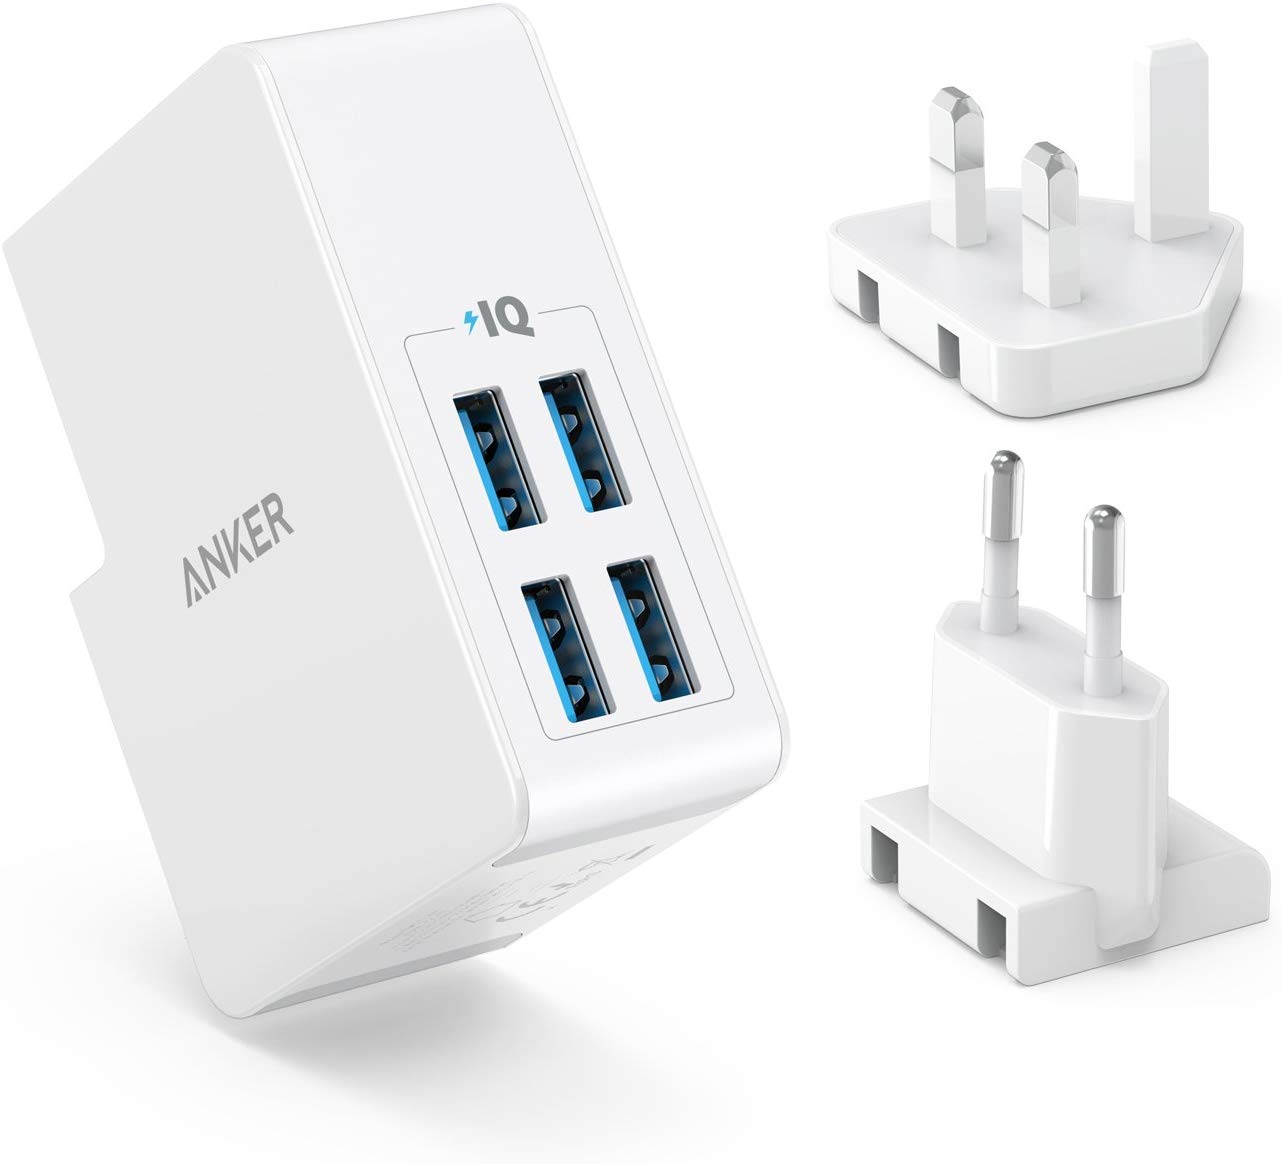 Anker USB Plug Charger 5.4A/27W 4-Port USB Charger, PowerPort 4 Lite with Interchangeable UK and EU Travel Charger